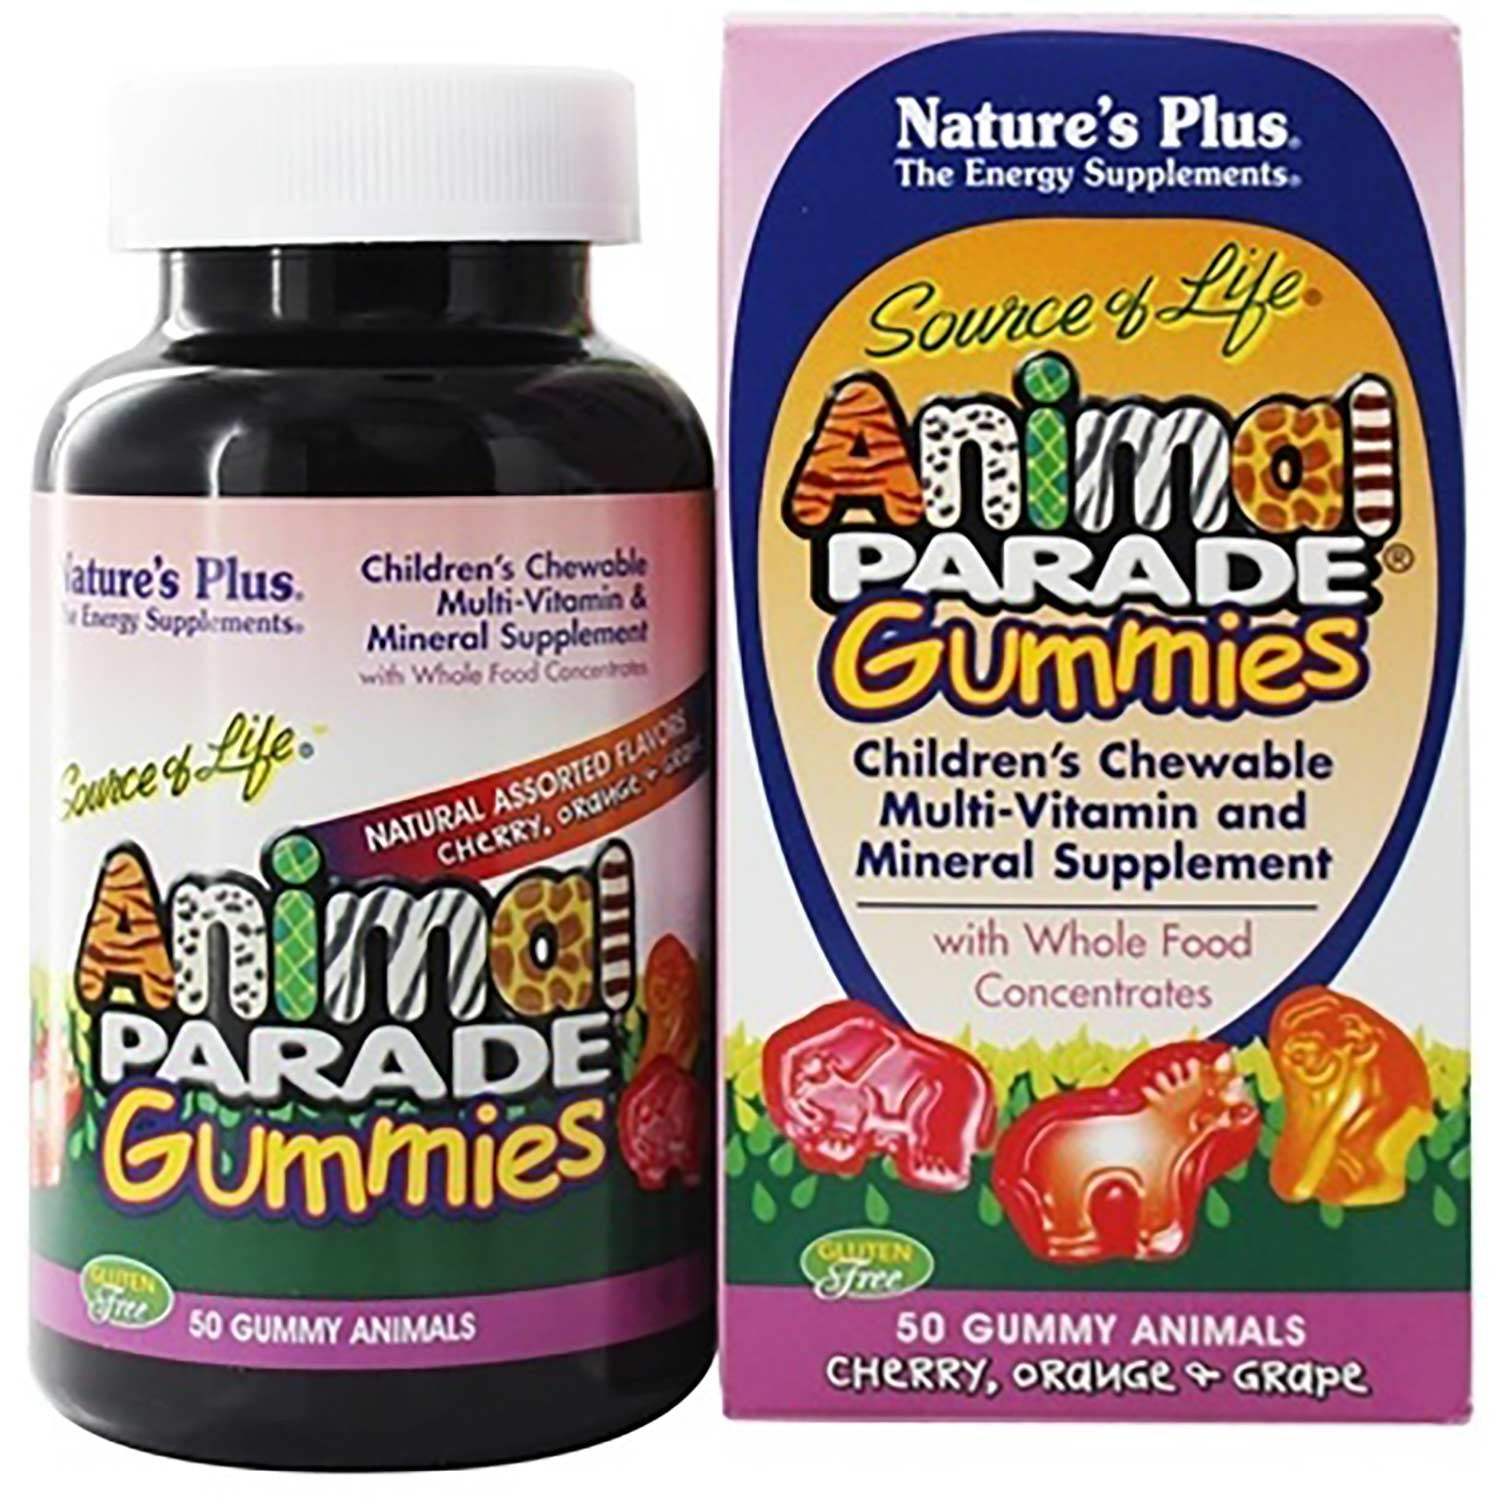 Natures Plus Source of Life Animal Parade Gummies (Assorted), 50 gummies